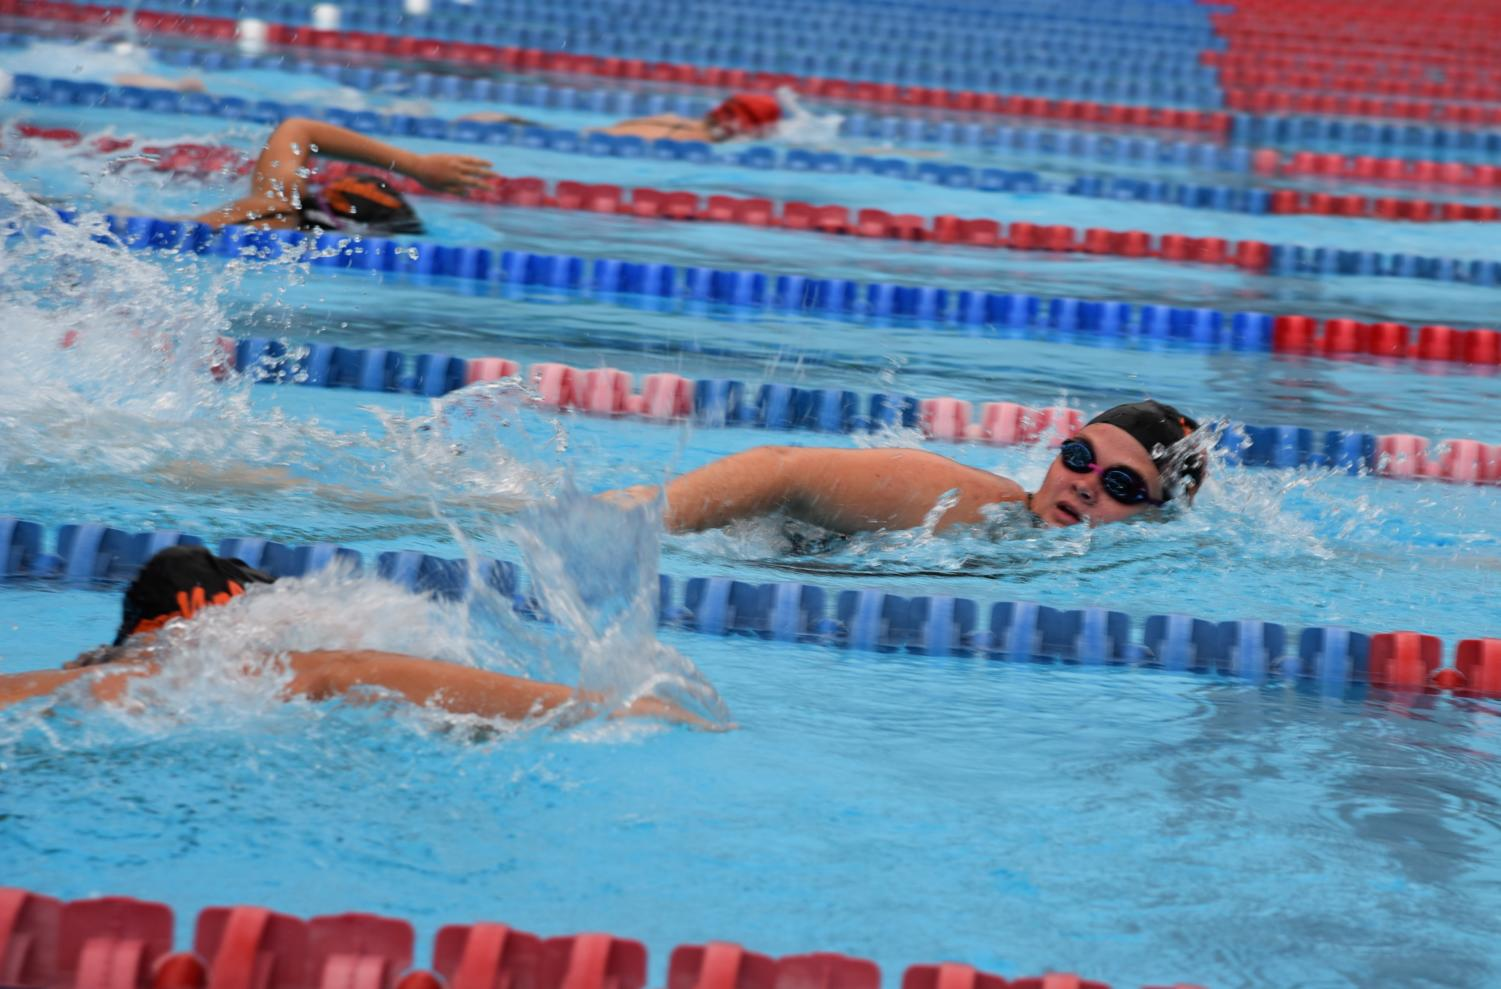 The race for the finish line can be intense for female swimmers as the stakes get higher.